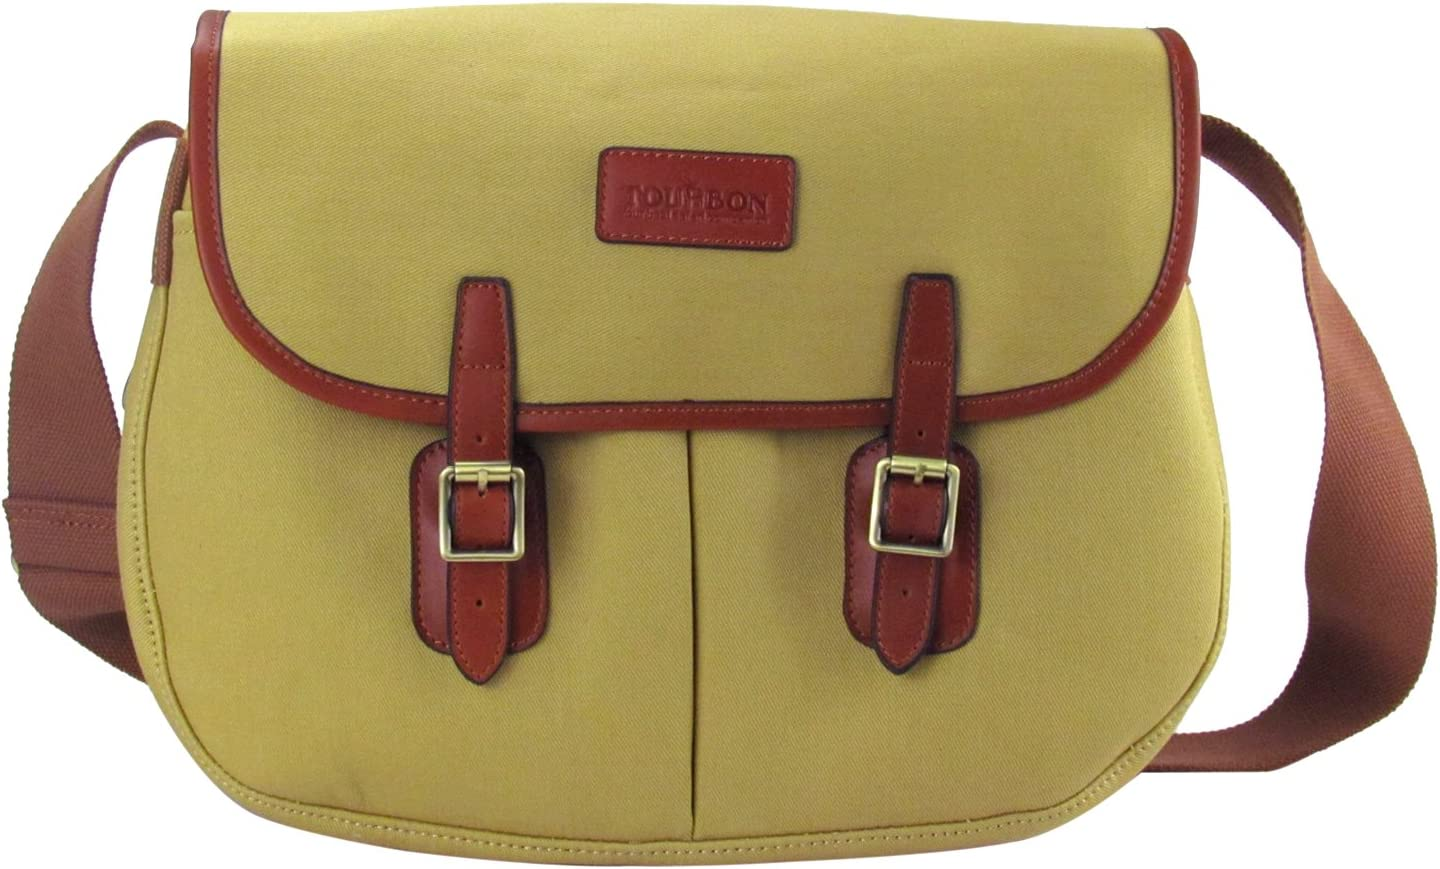 Tourbon Fly Fishing Game Bag Canvas and Leather Tackle